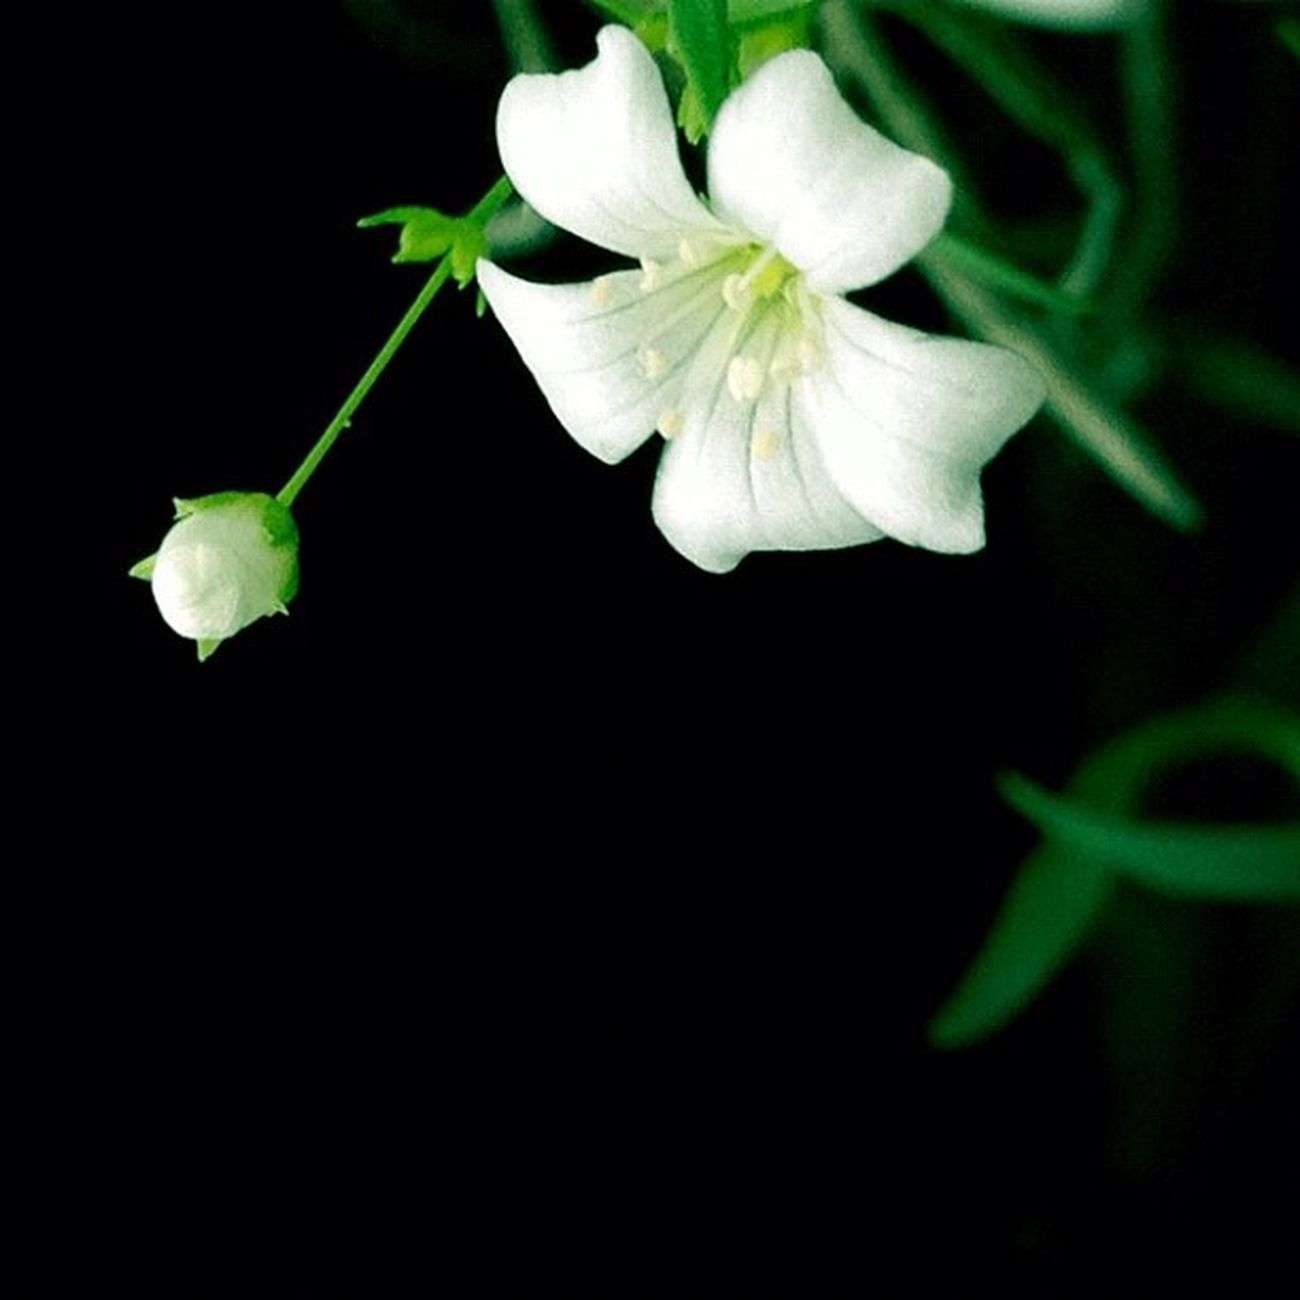 Miniature Bloom -On our balcony (Living in Singapore, a continuing series) Dhexpose Instamasters Garden Ace_ Flower Deadlydivas C Deadlydivas_edits Gang_family Ube_ Unitedbyedit Ig_outkast Amselcom Ig_one Mobileartistry Edit2gether Instauno Stunning_pics7 Igsg Icatching Bd Femme_elite Ig_artgallery Onlythe_femme Ig_everything Hdr_femme Editsrus Minimal2_nio Bestinstagramart